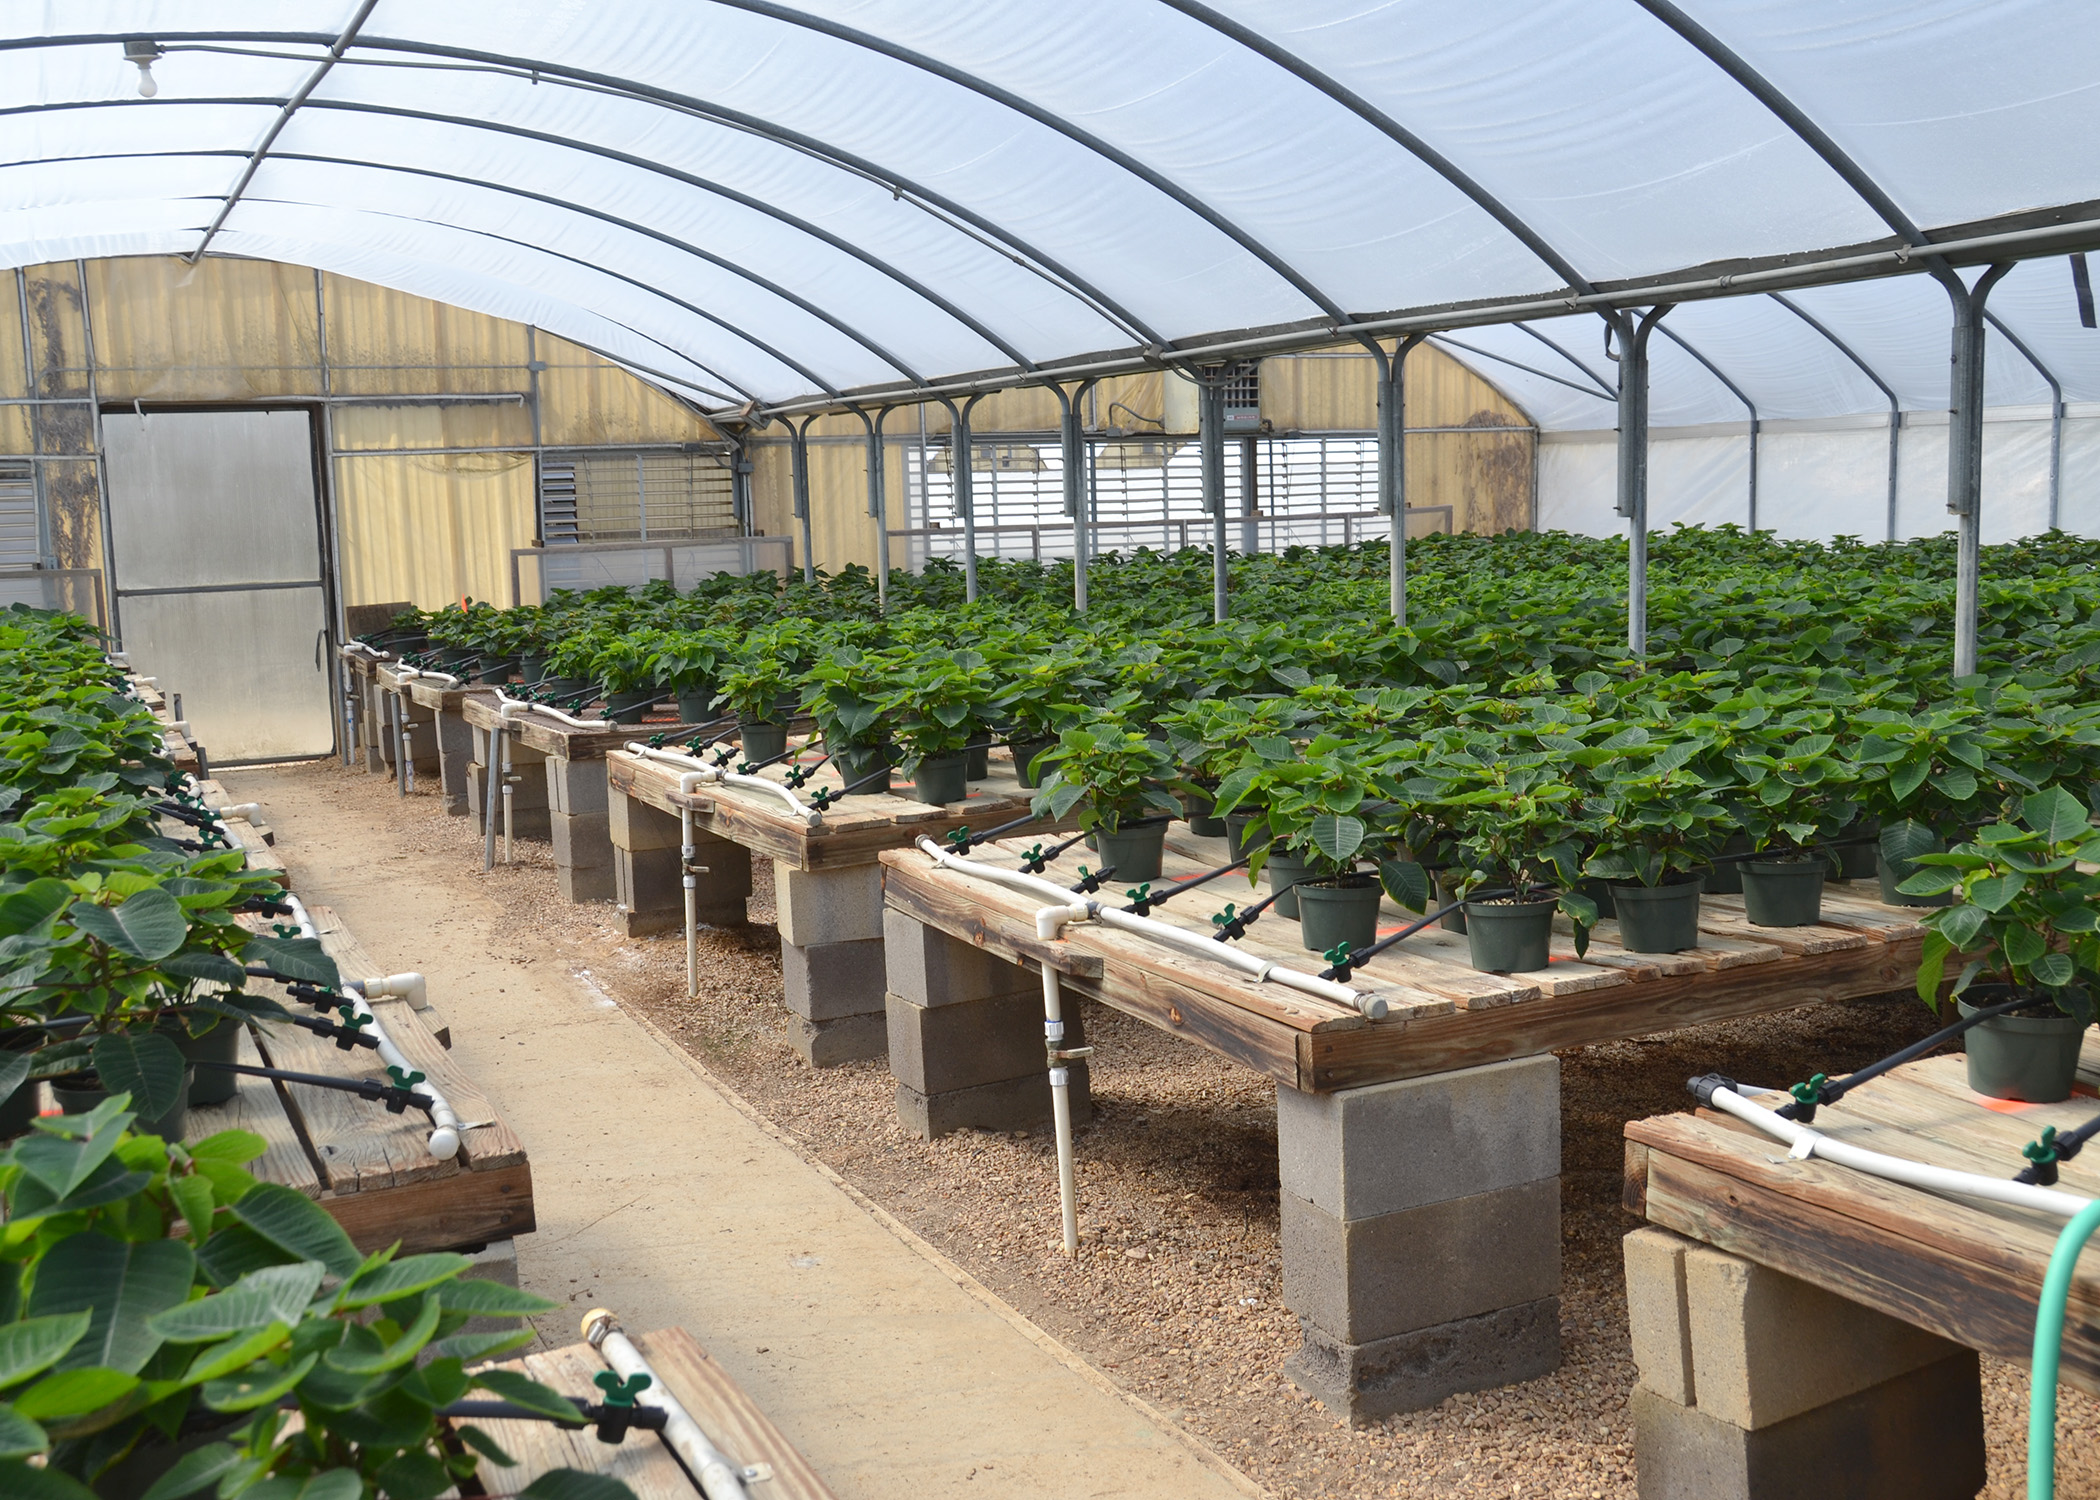 A Low Pressure Drip Irrigation System Won The Roval Of Standing Pine Nursery Owner